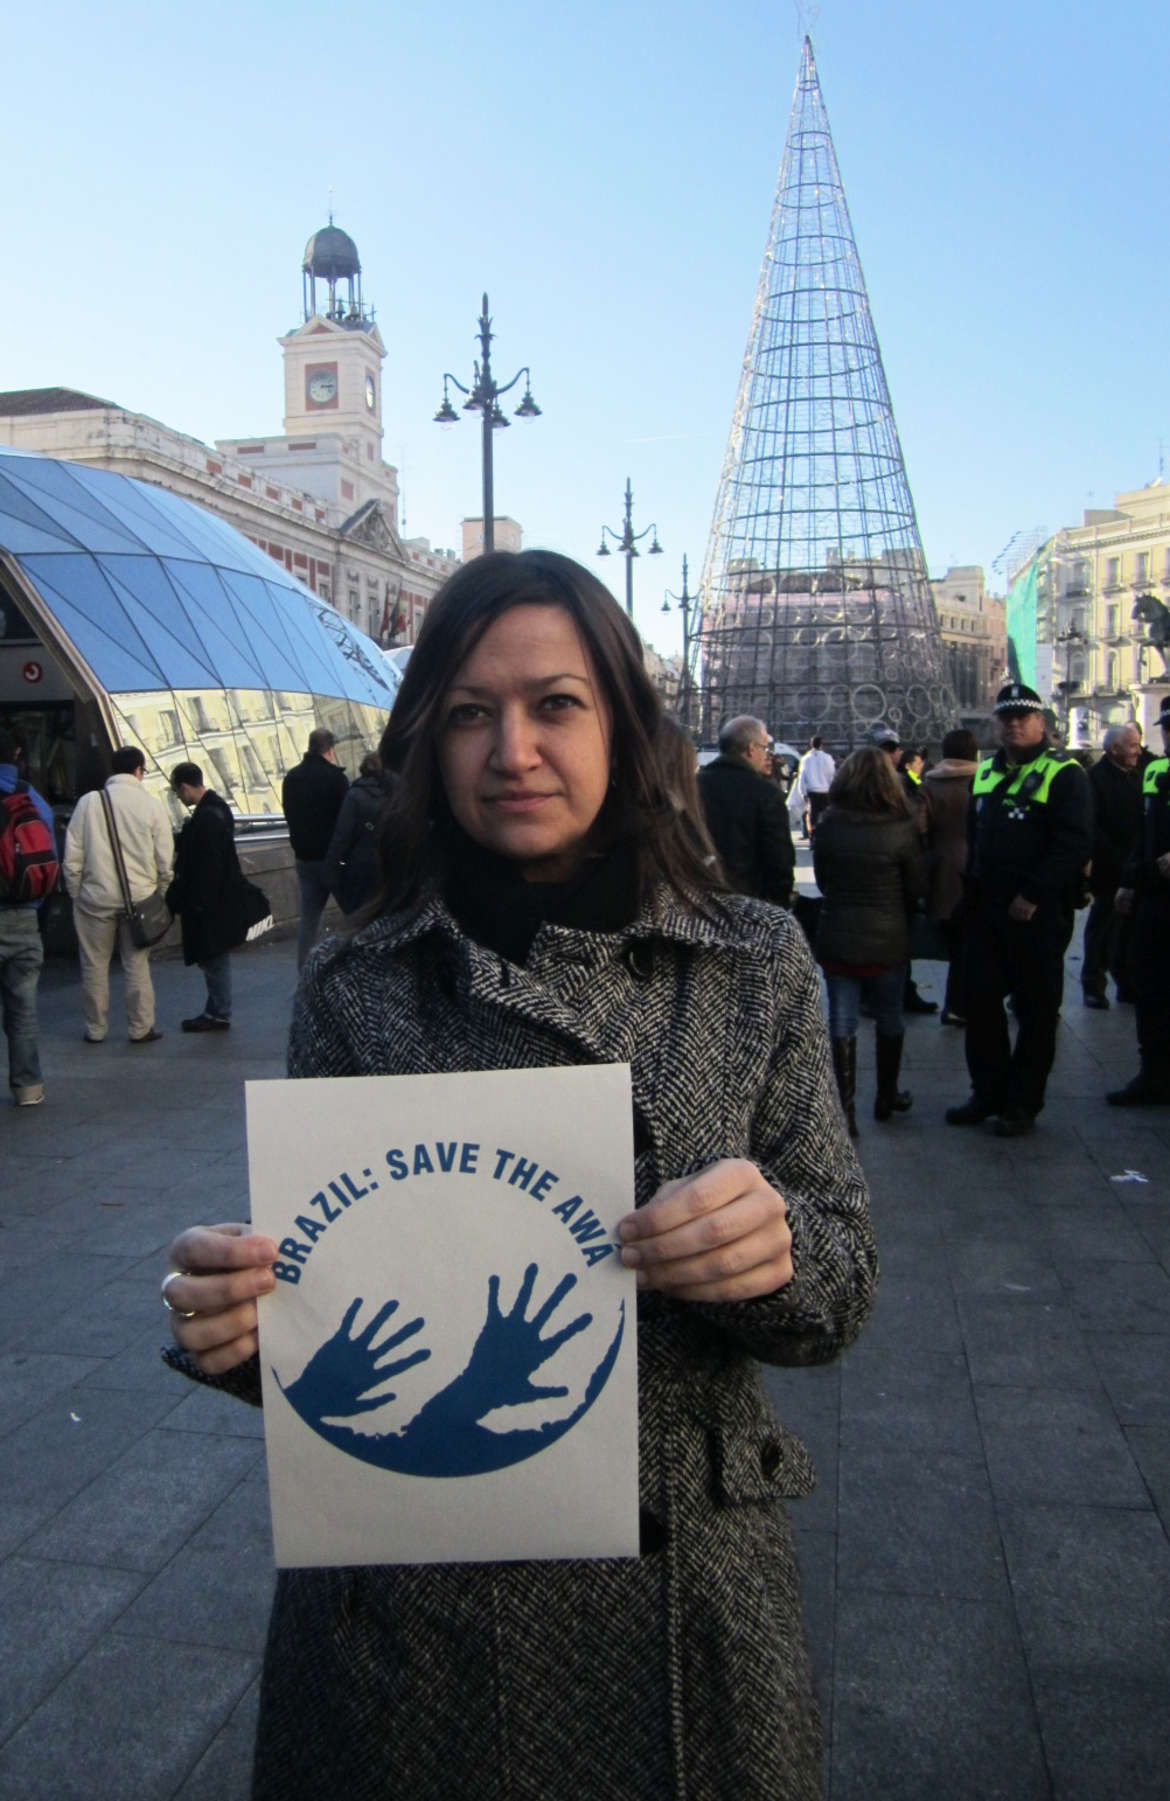 A woman showing her support for the 'Brazil: Save the Awá' campaign, Puerta del Sol square, Madrid, Spain.